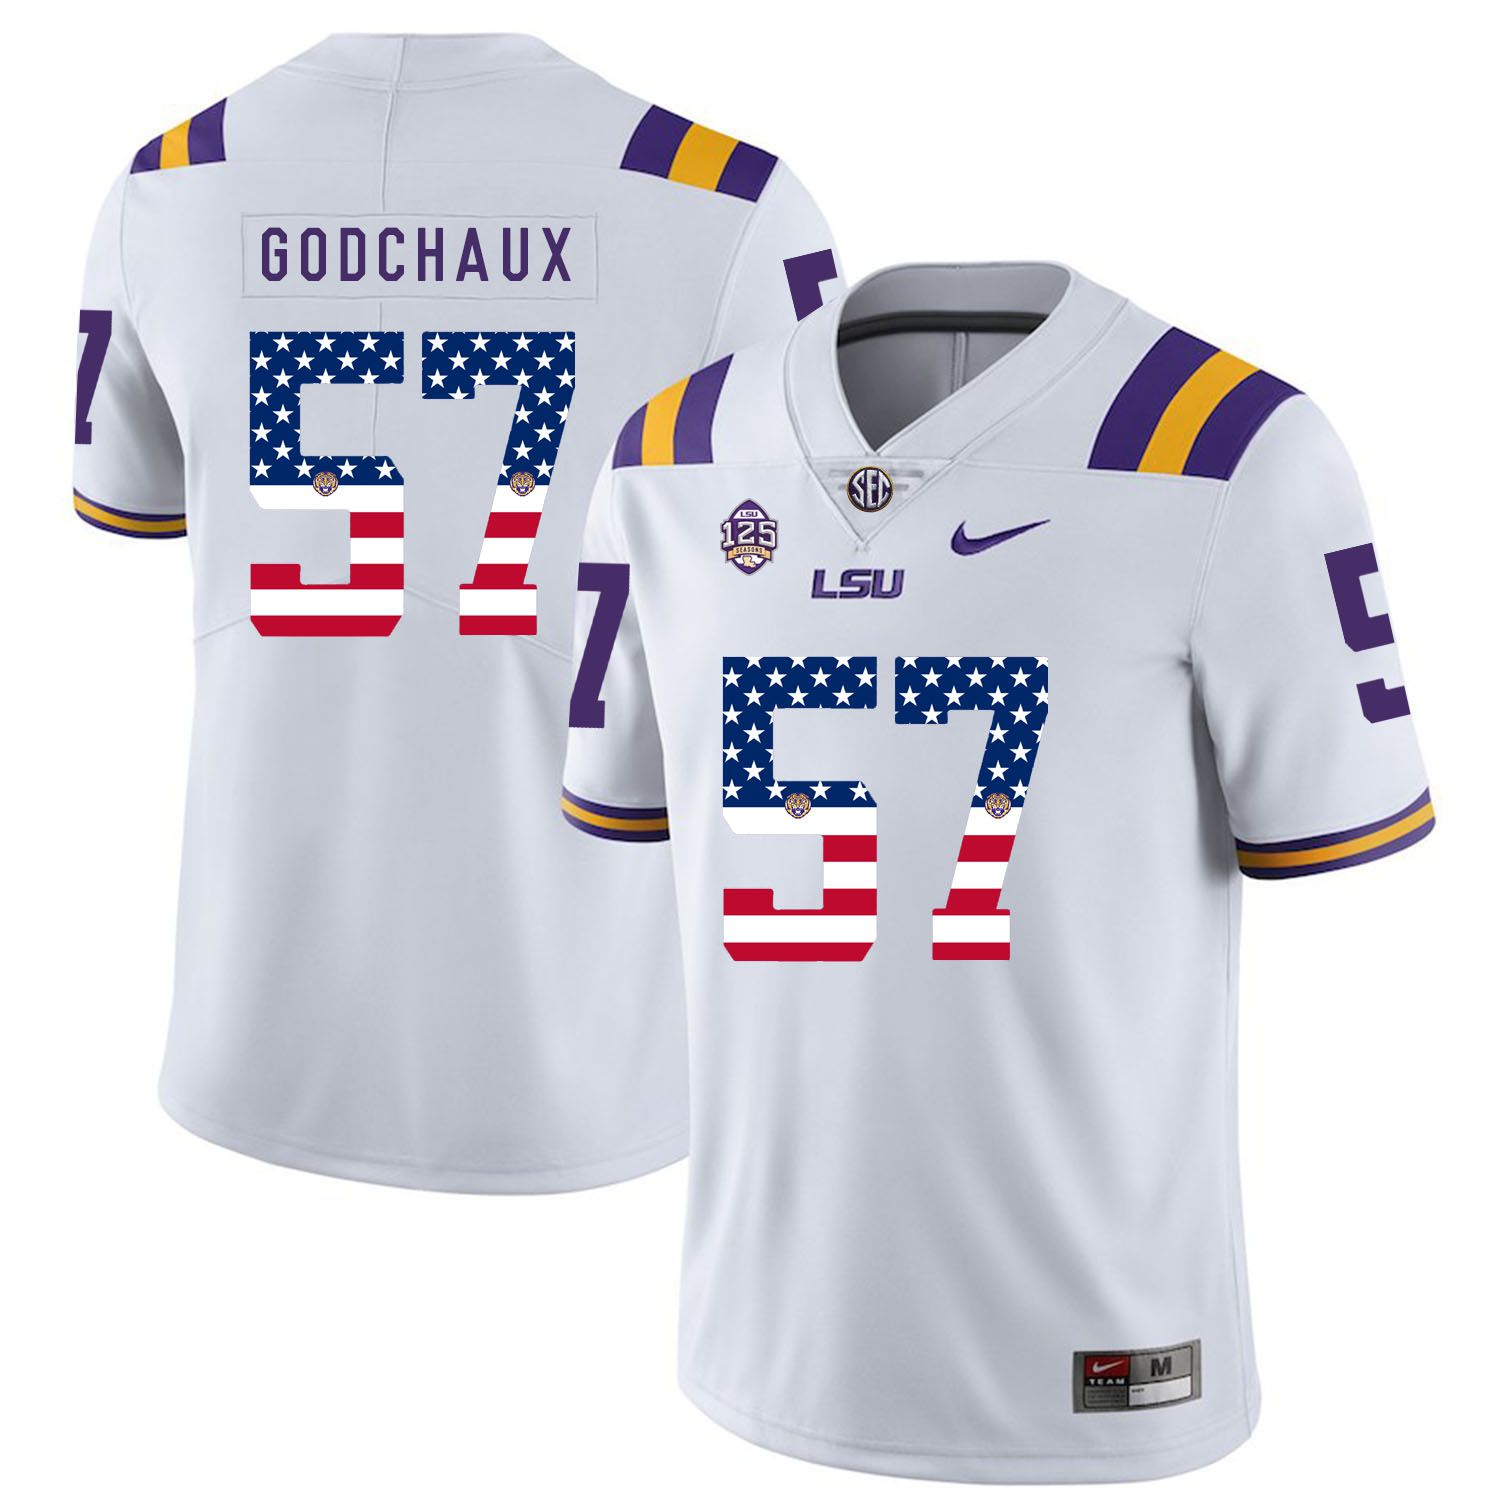 Men LSU Tigers 57 Godchaux White Flag Customized NCAA Jerseys